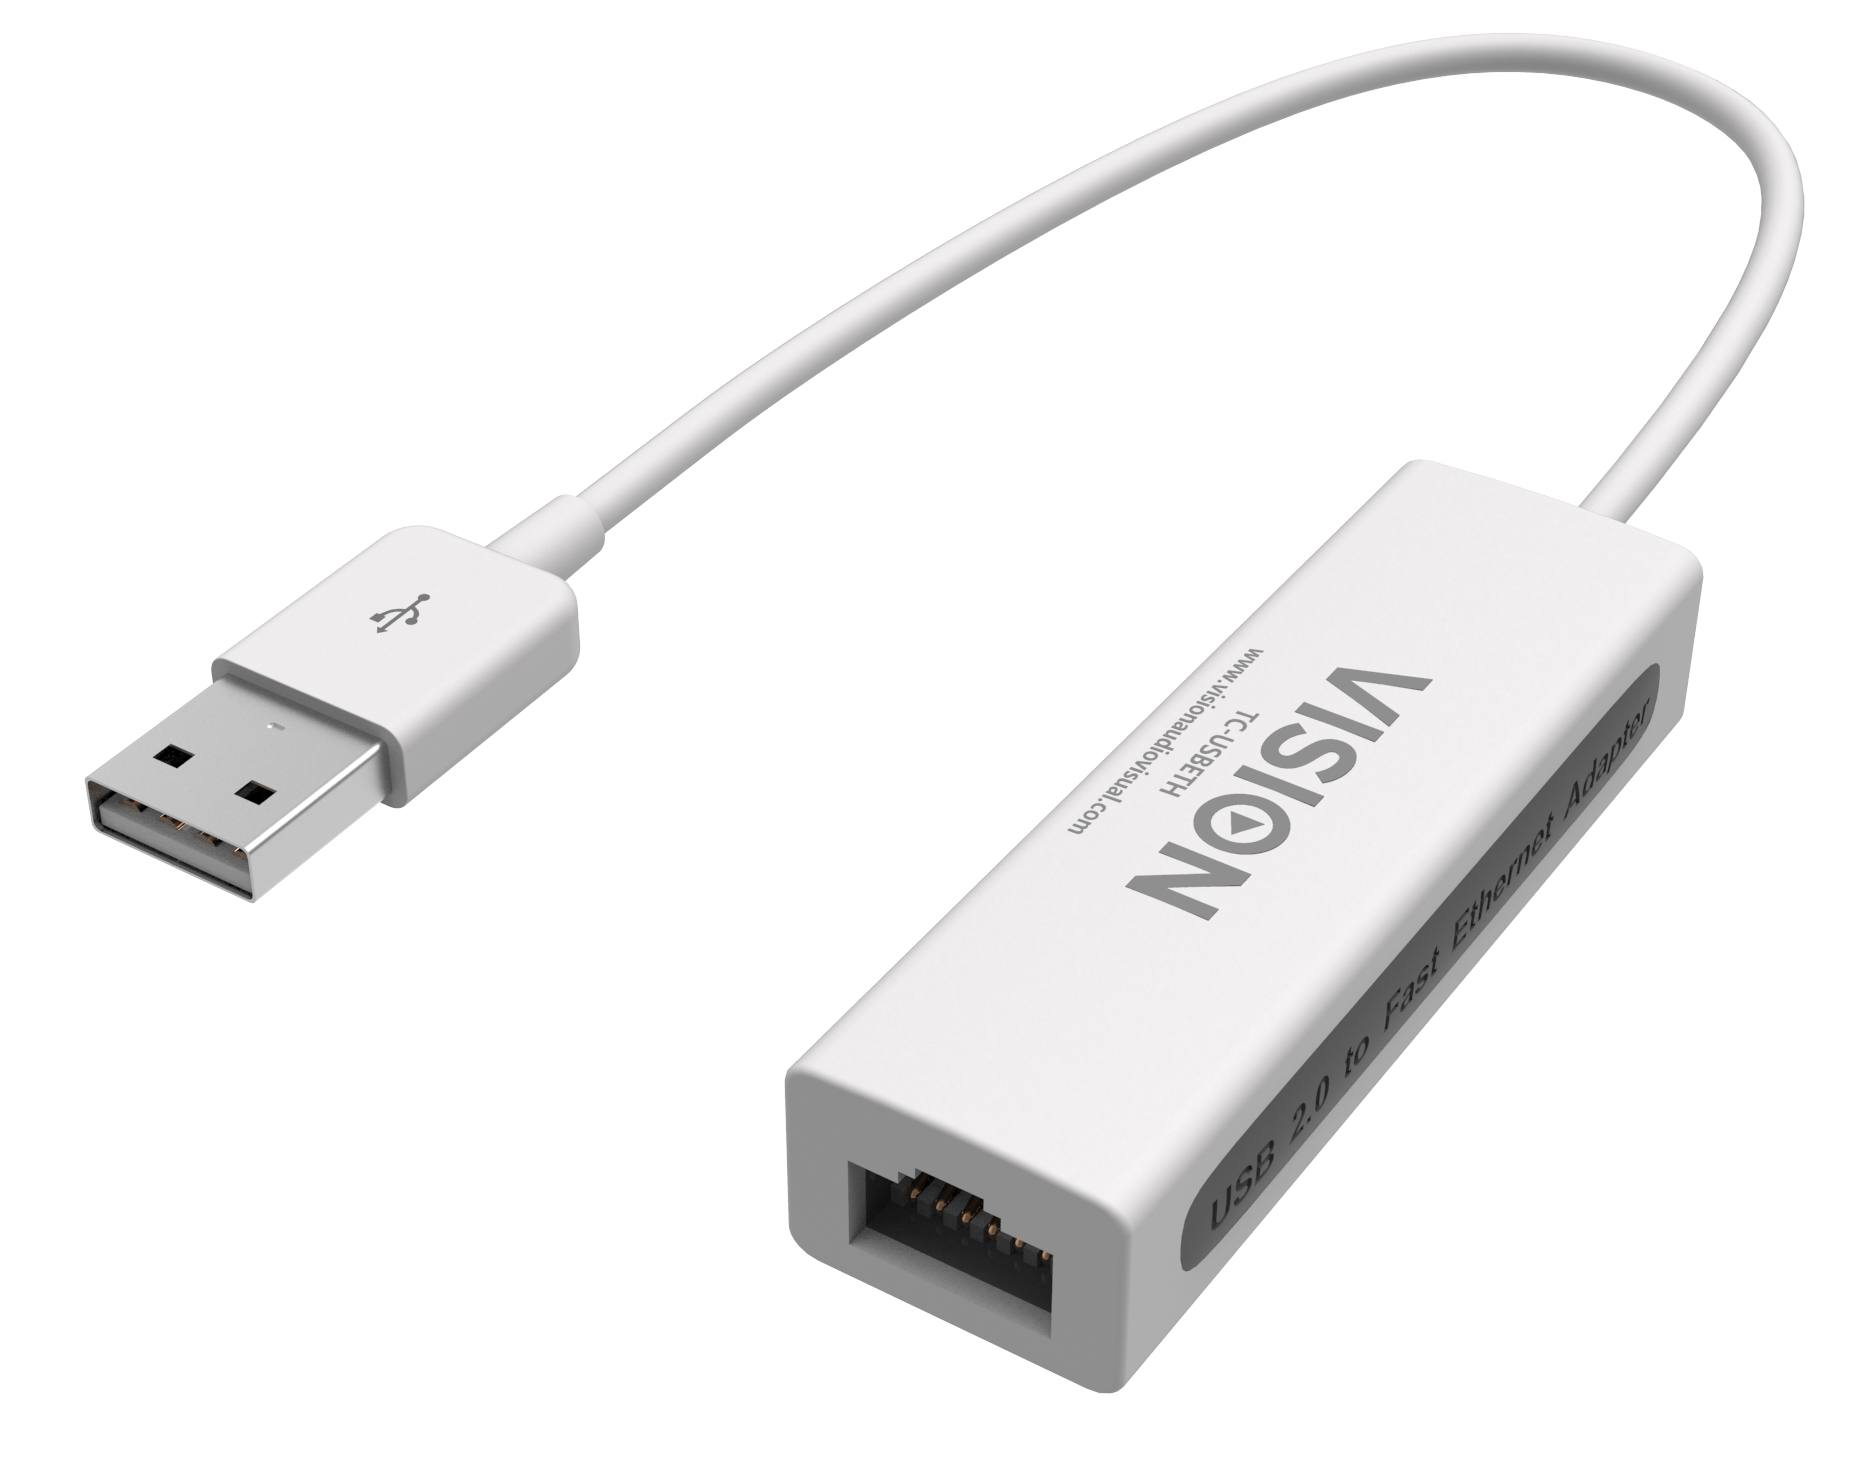 Vision TECHCONNECT USB ETHERNET ADAPTOR Engineered connectivity solution, white chassis, USB 2.0 to Etherne